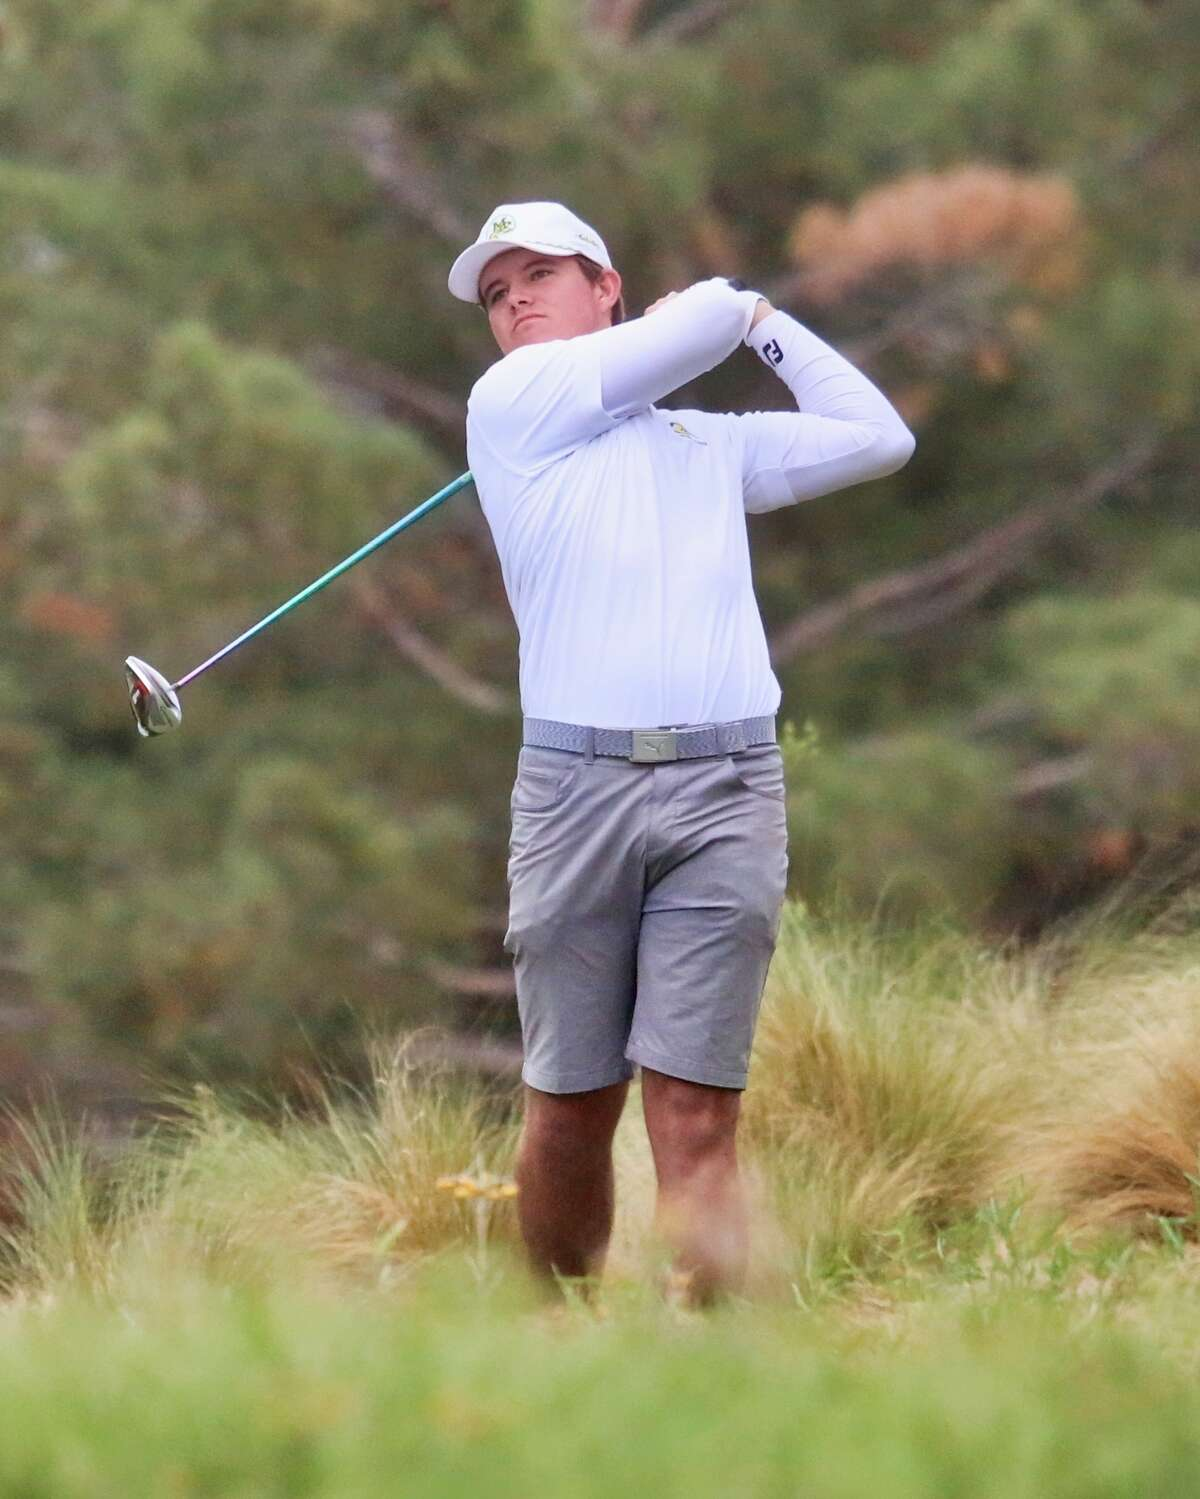 Midland College golfer Samual McKenzie is shown in action during the second round of the NJCAA National Tournament at The Rawls Course in Lubbock on Tuesday.